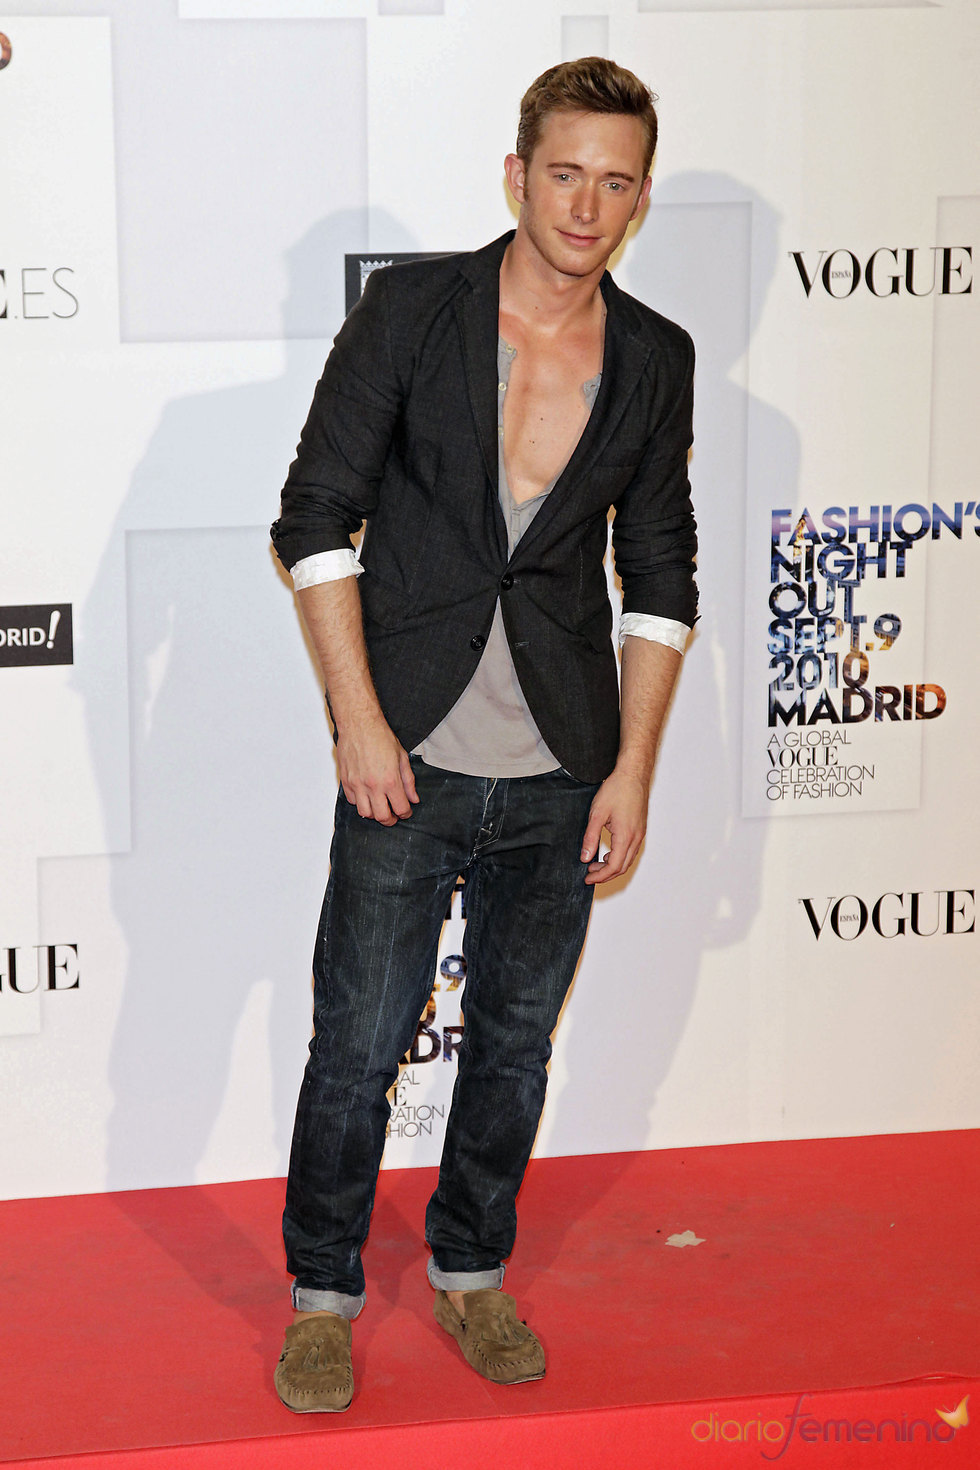 Pablo Rivero en la fiesta de Vogue en Madrid